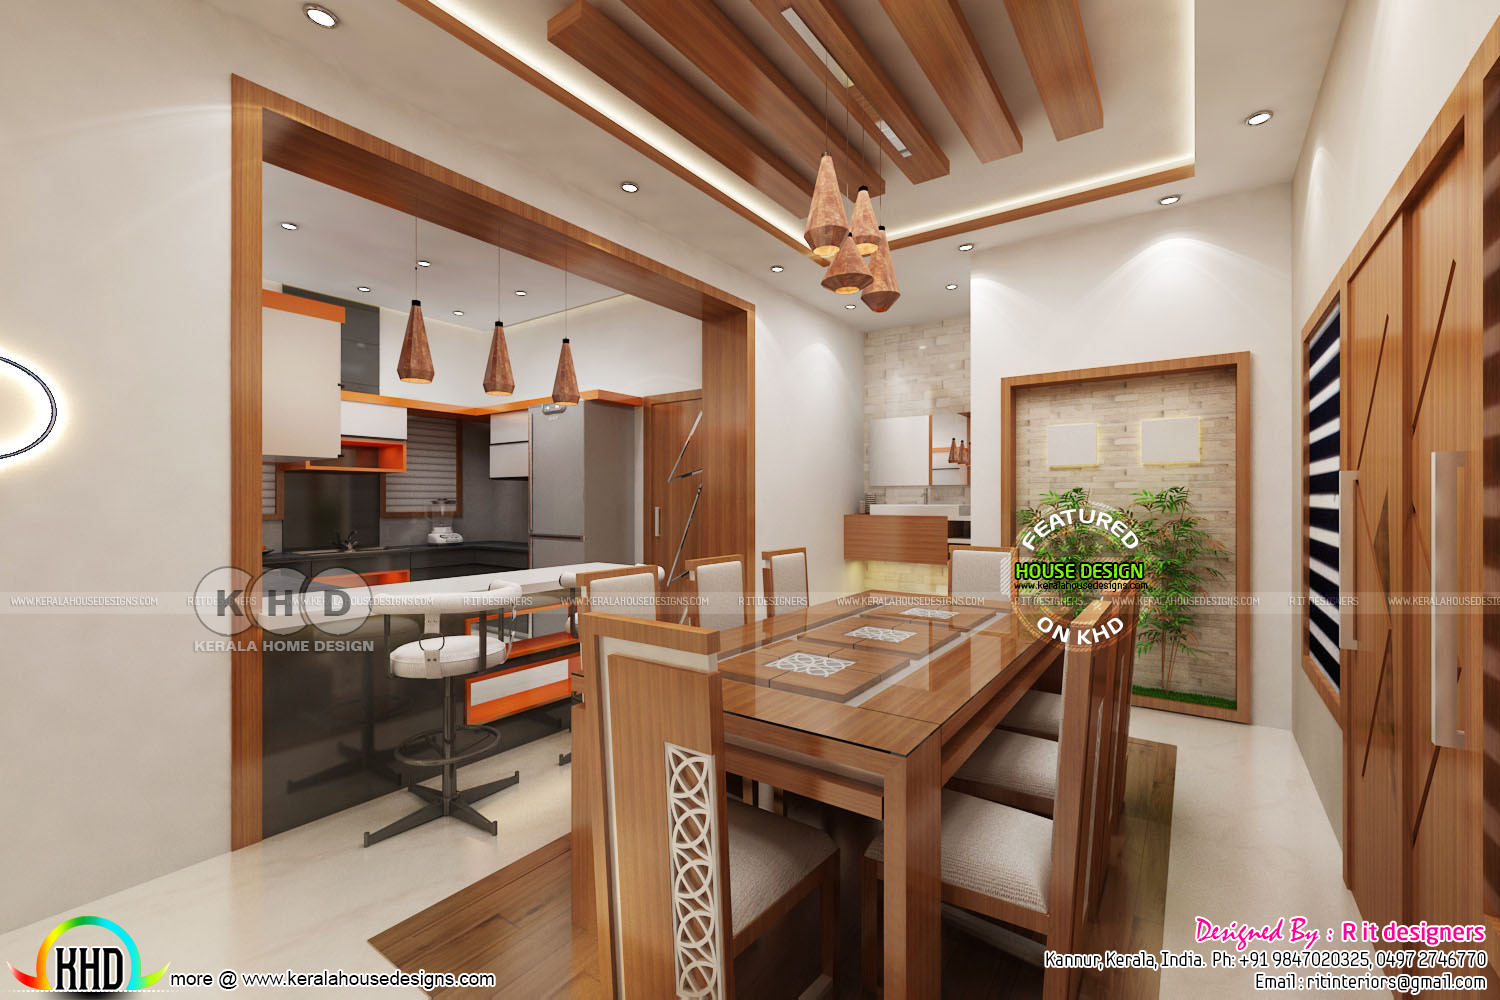 Kerala Homes Interior Kitchen Design Photos Cool Dining With Open Kitchen And Living Room Kerala Home 9757 5